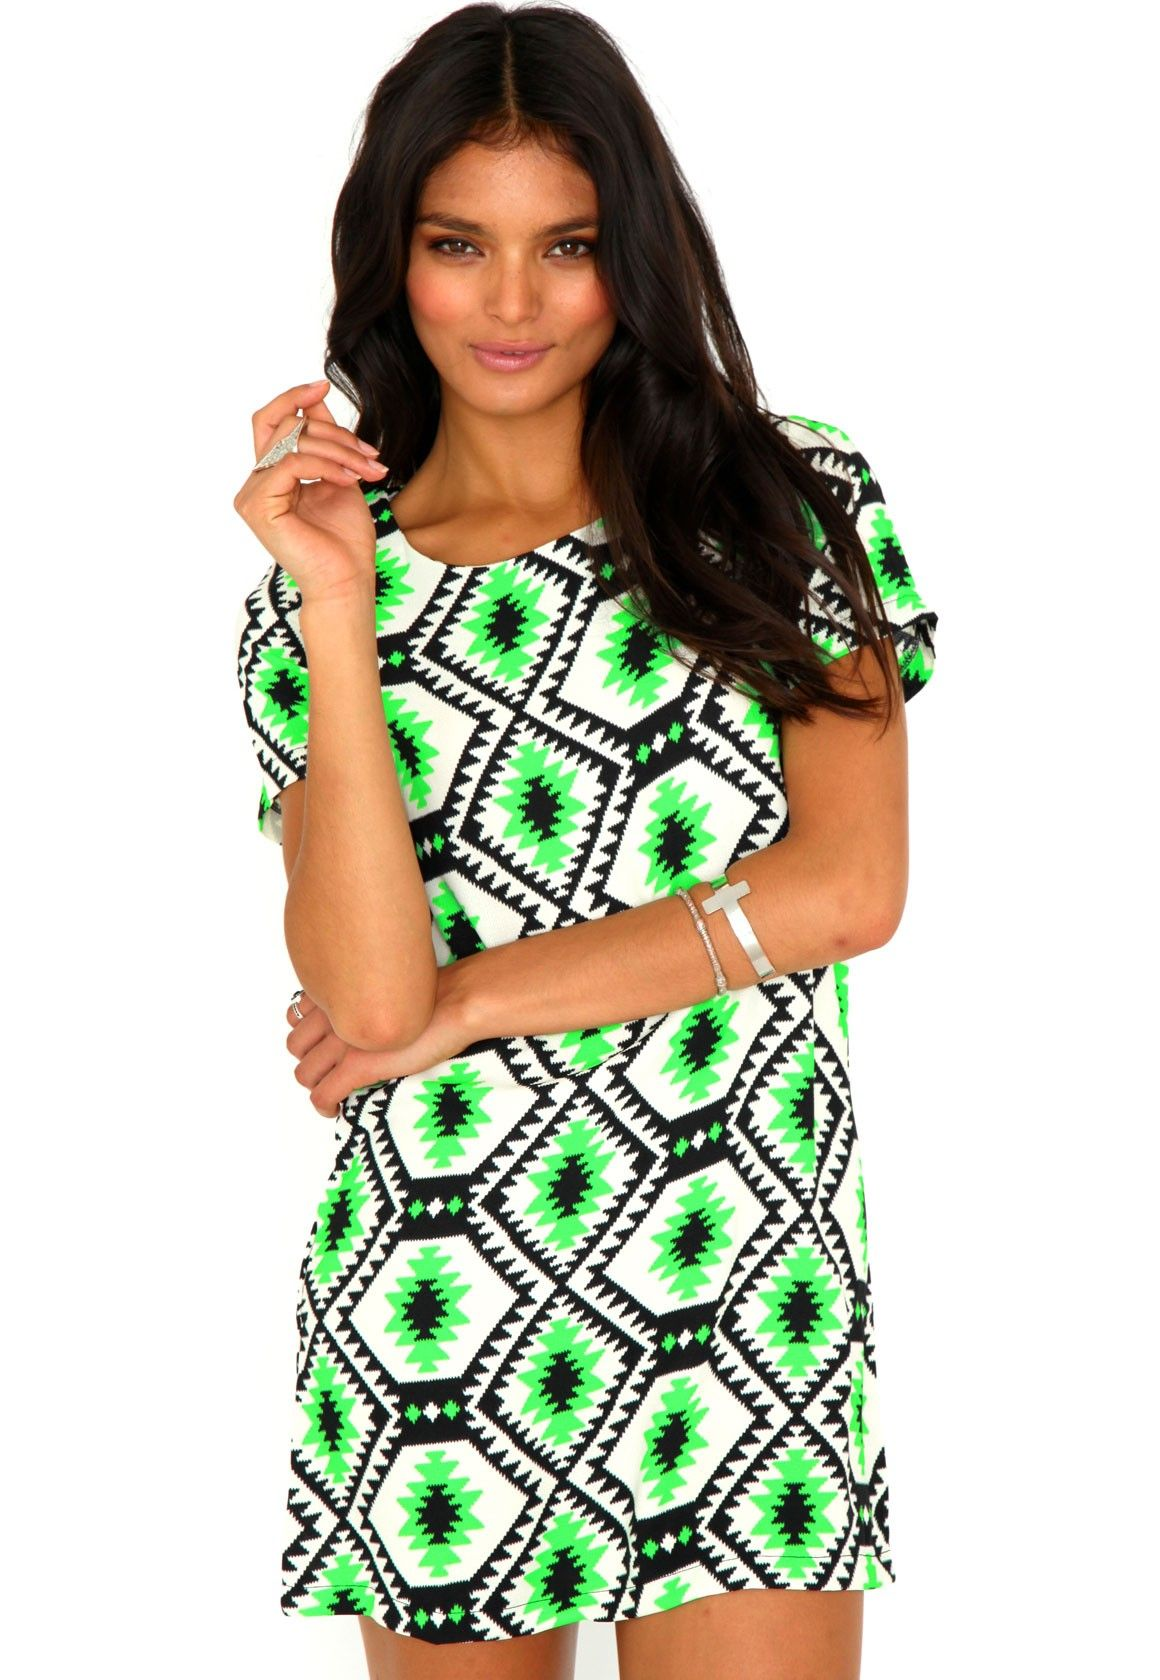 Suzanne tribal mini dress in neon green native american inspired